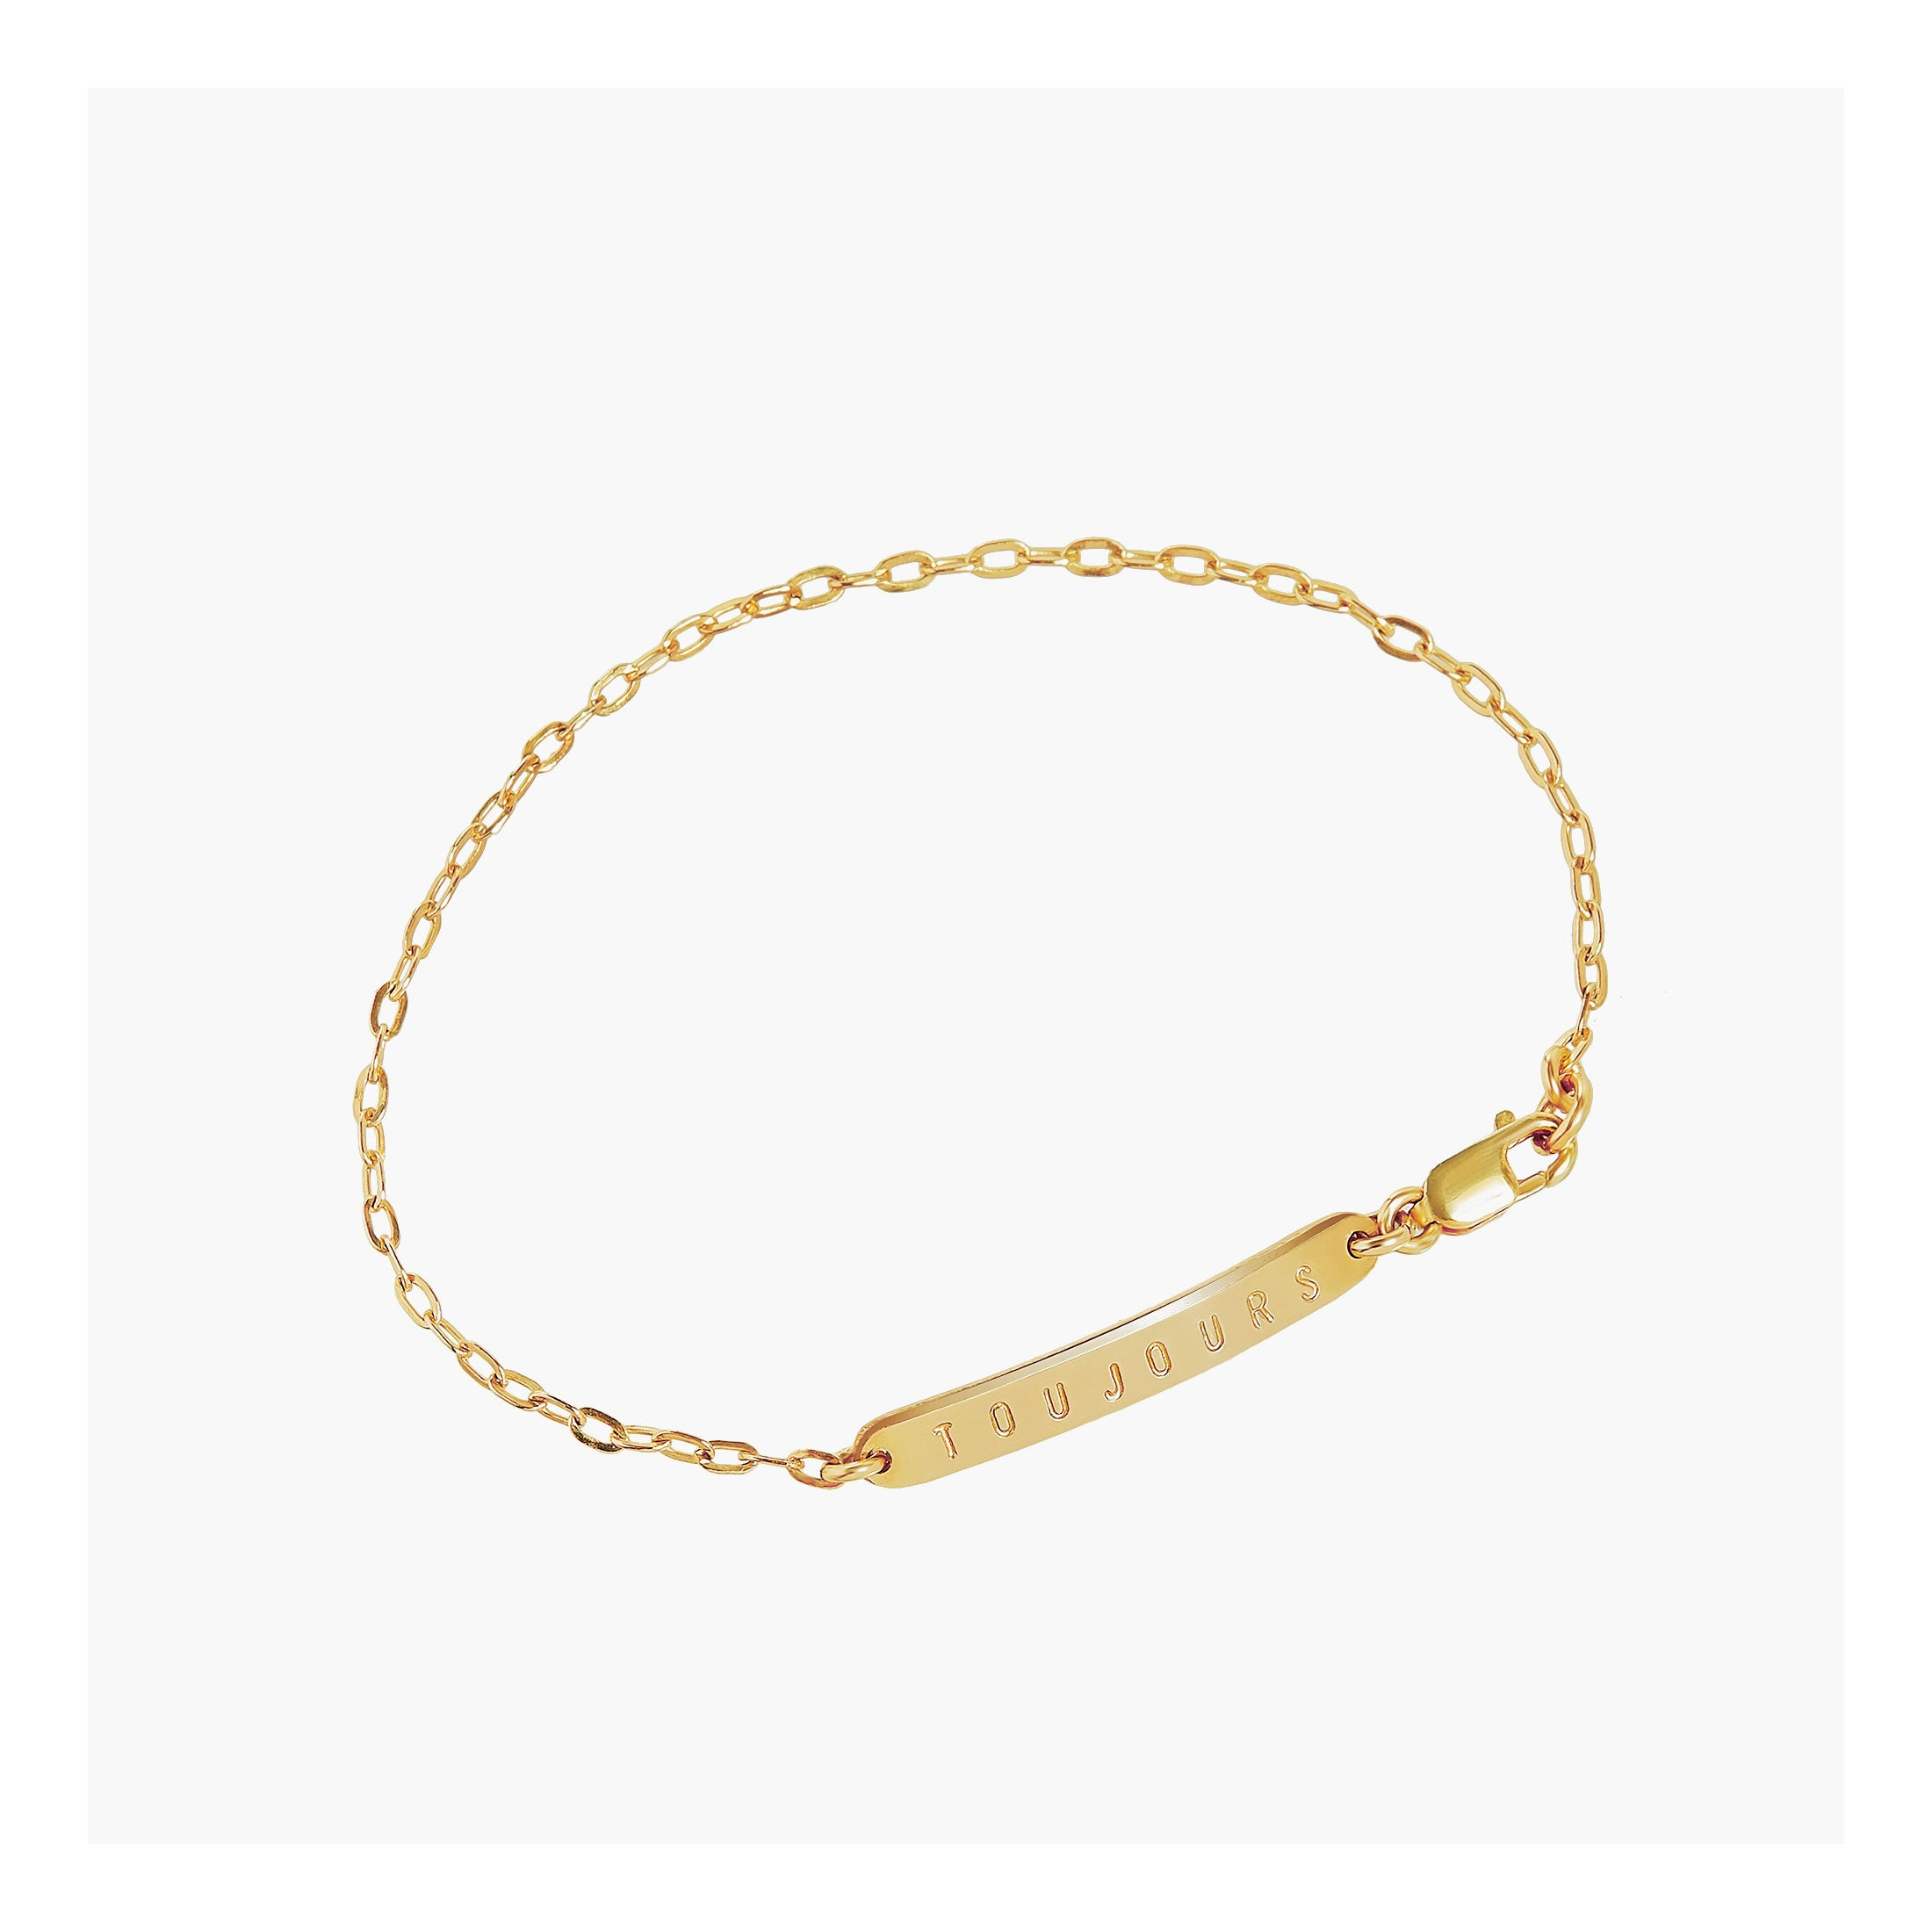 Dainty bar bracelet engraved with 'Always' in gold or silver